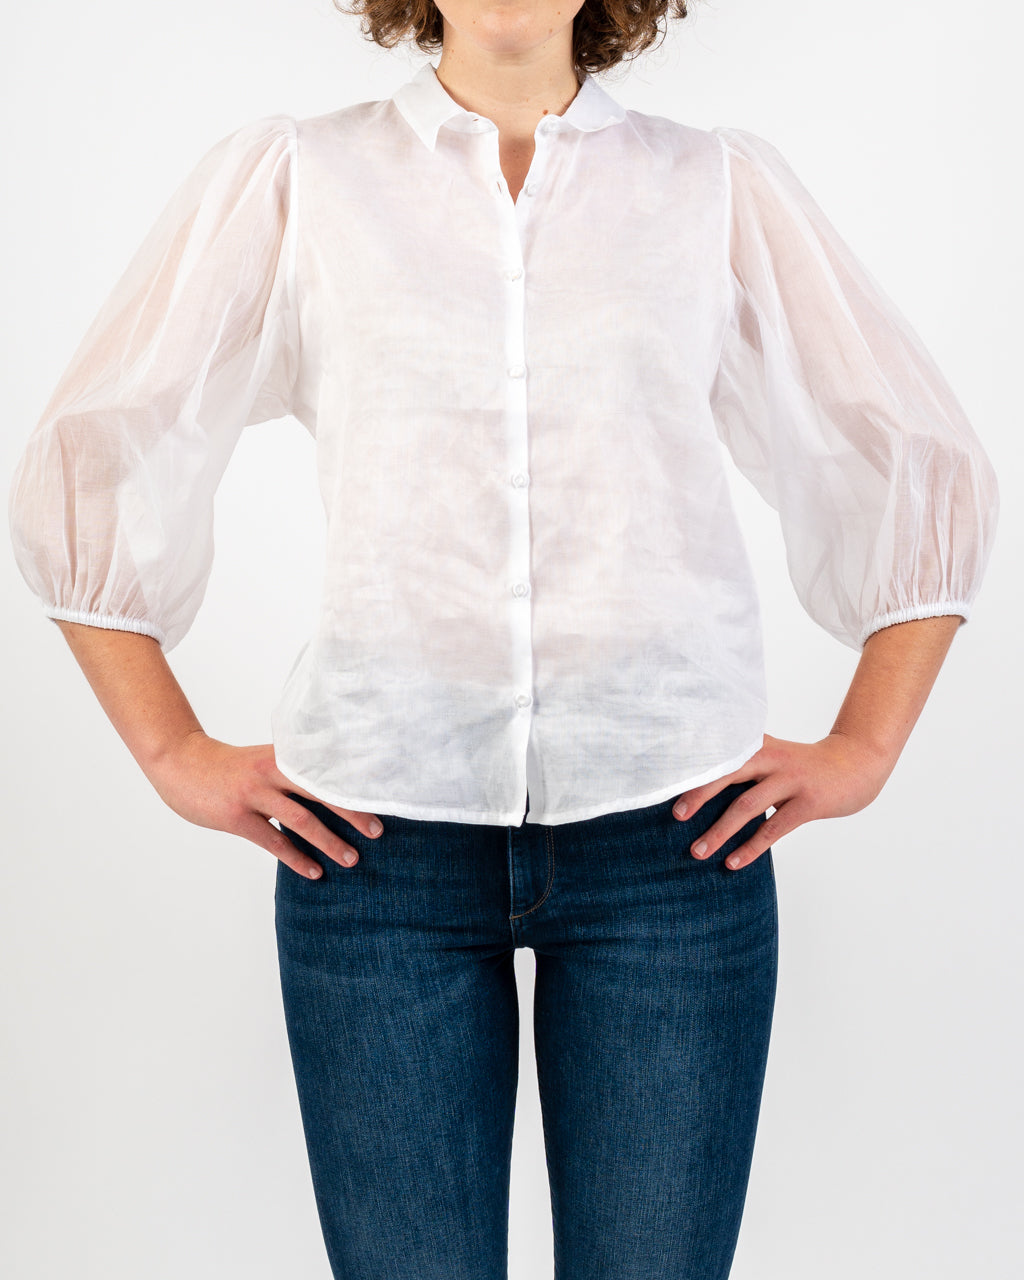 Organza Sheer Balloon Blouse